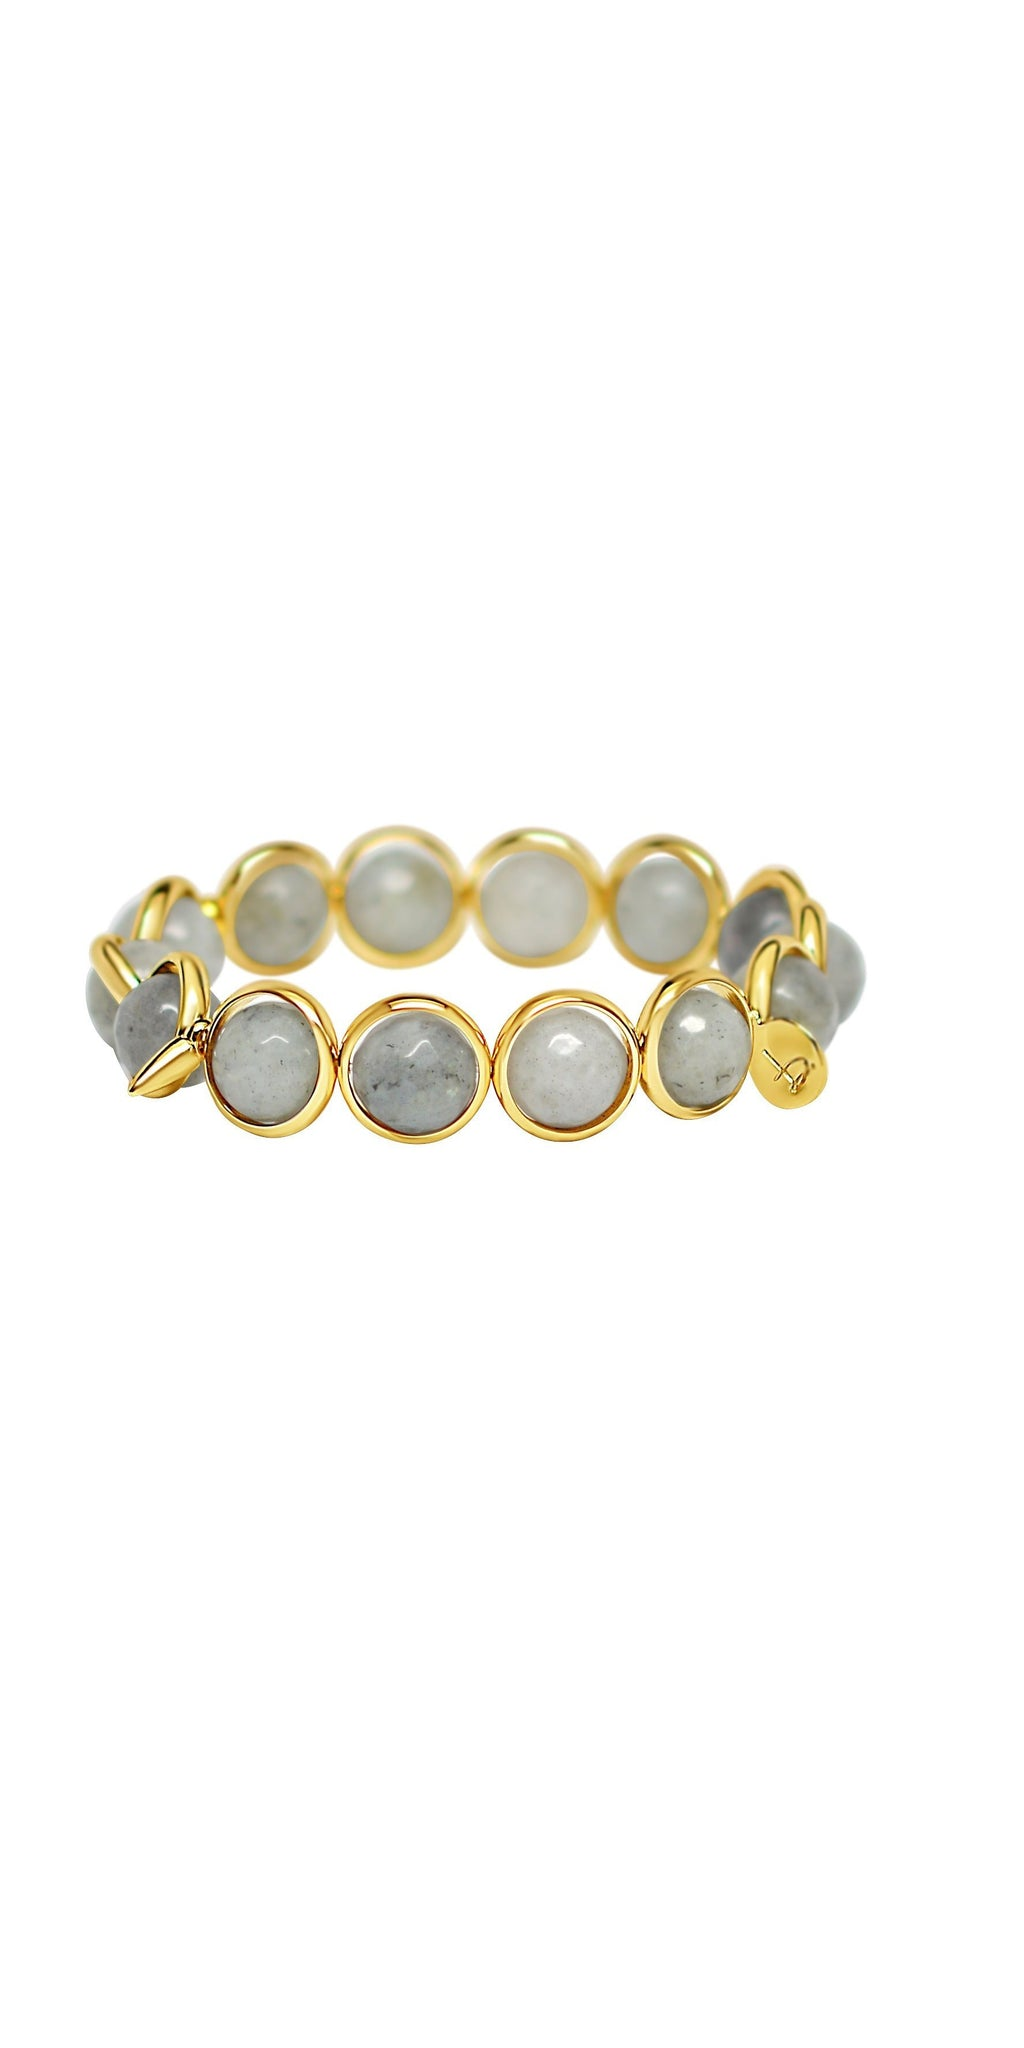 Labradorite Bead Bracelet - Gold-Sea Biscuit Del Mar